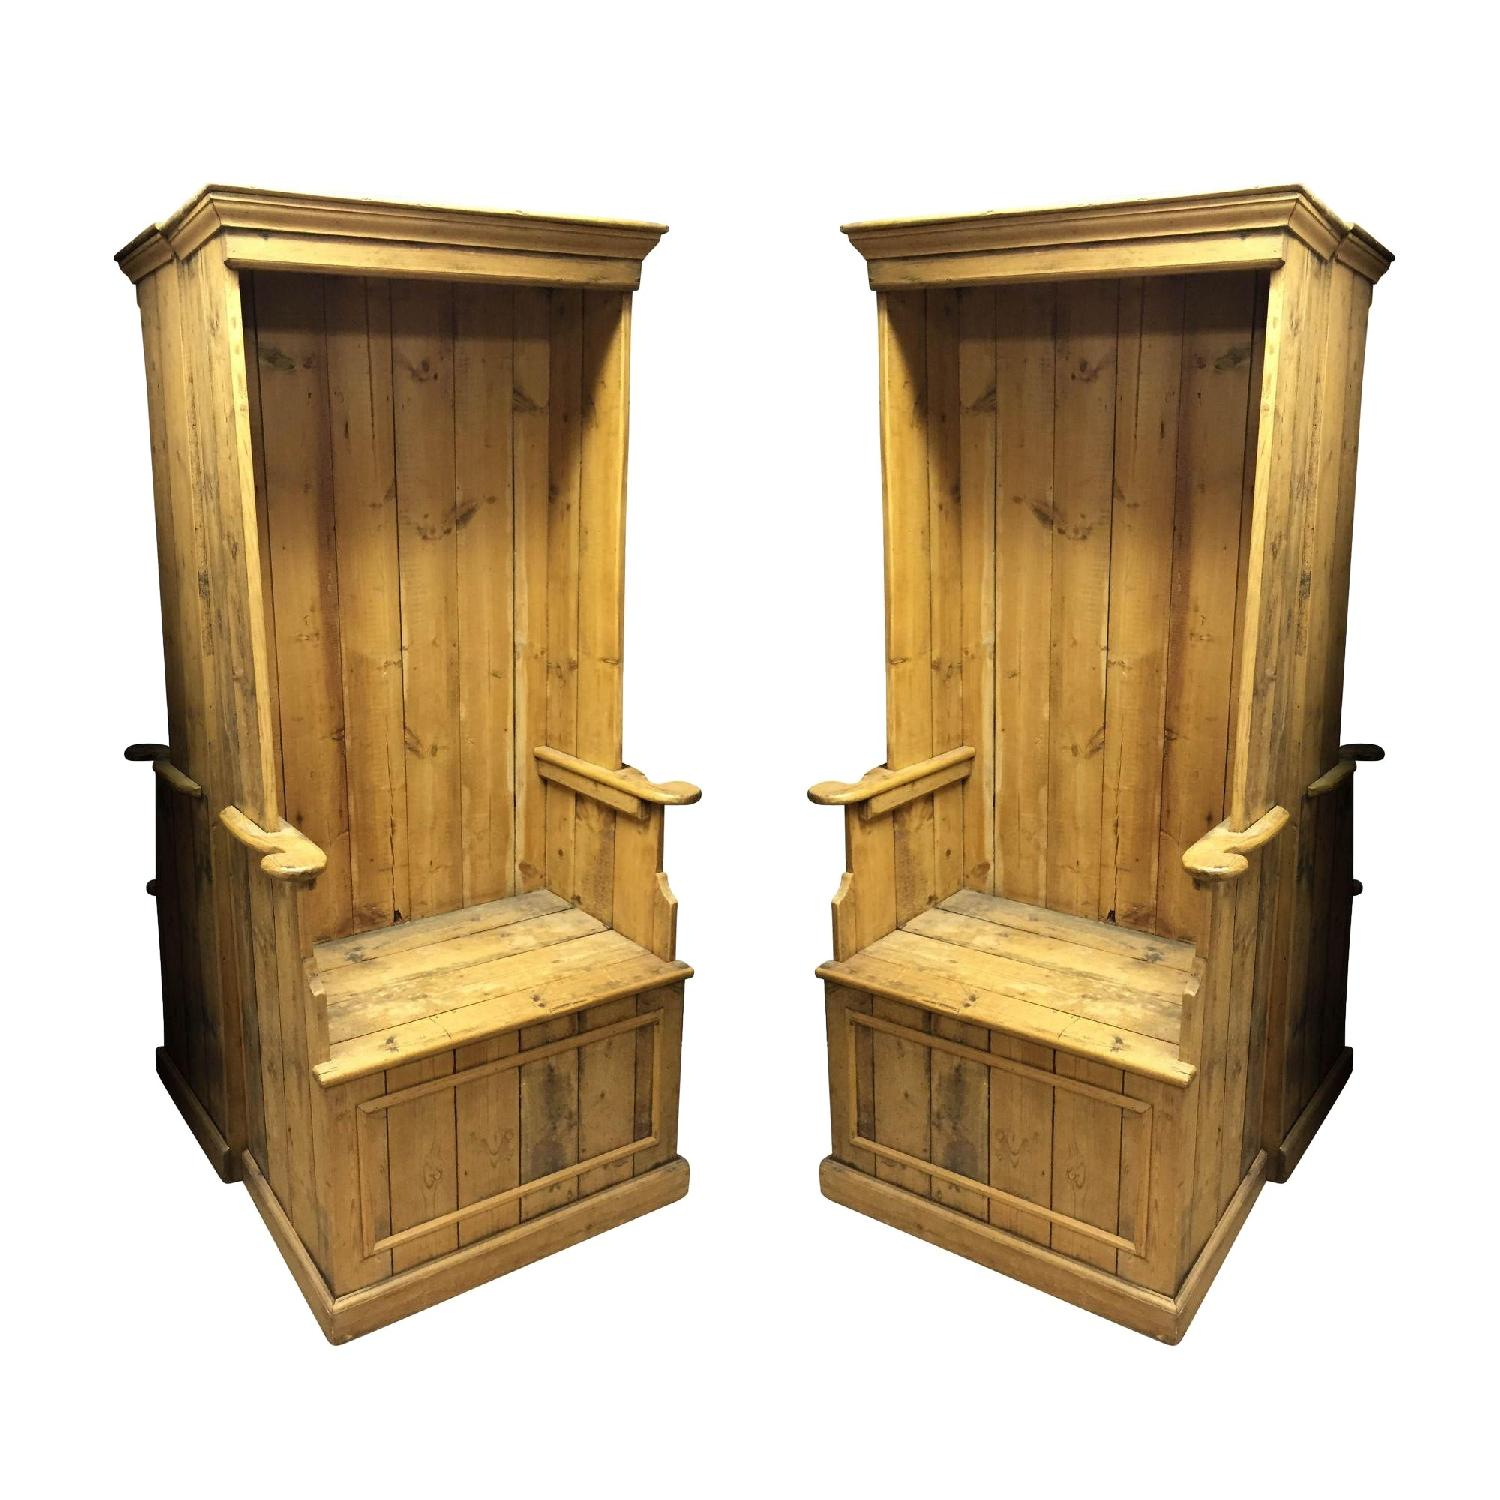 Antique Pine Porters Chairs - image-0